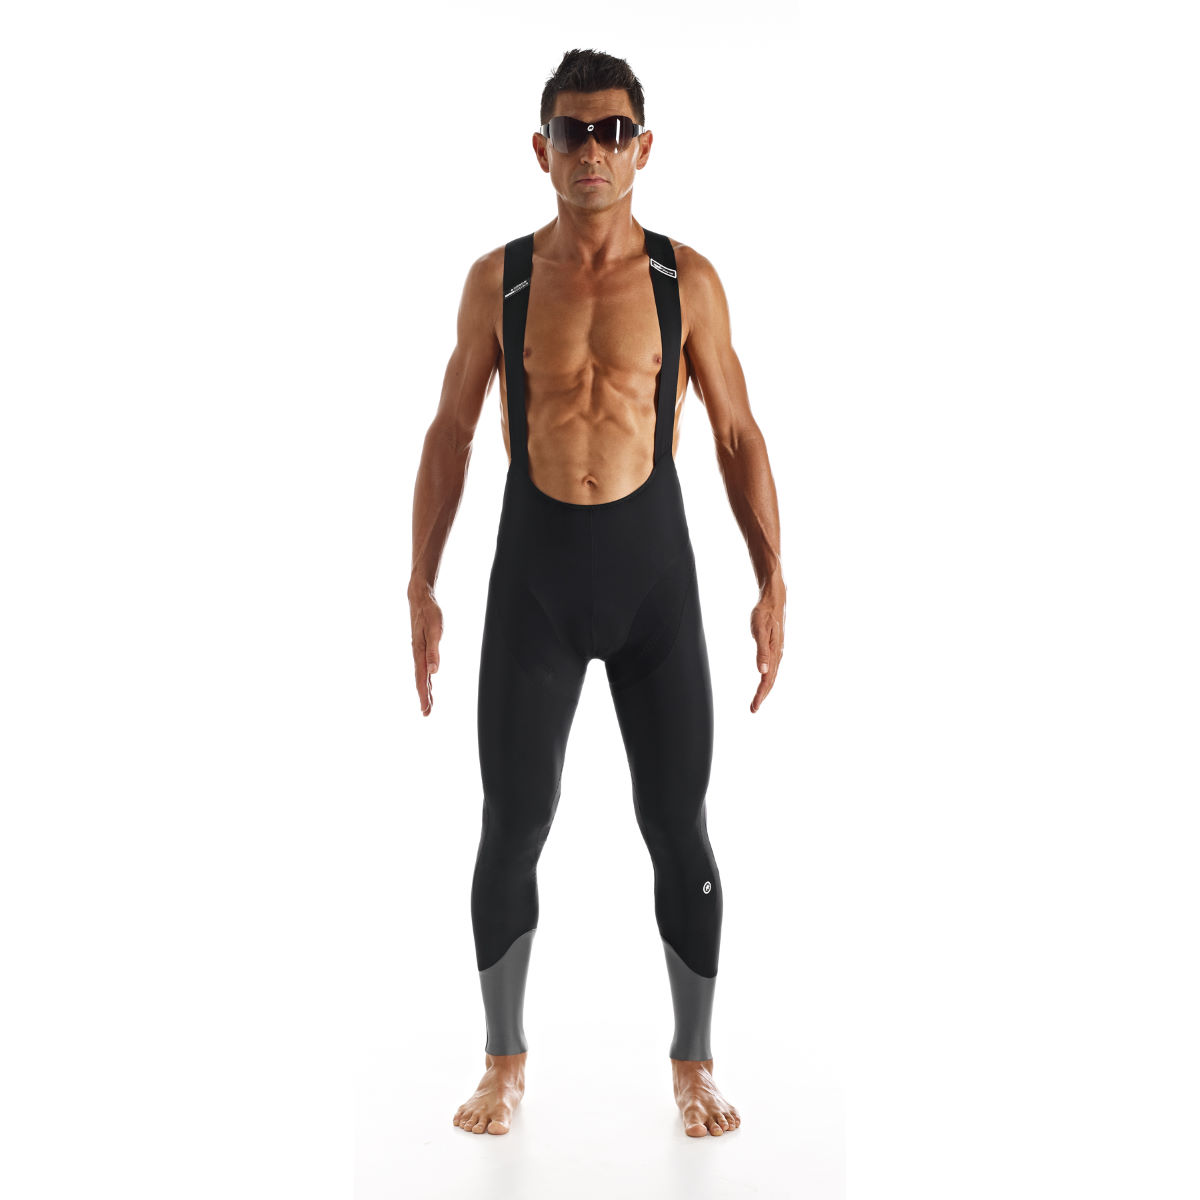 Assos ll bonkatights s7 cycling tights blok black aw15 11 14 171 15 s